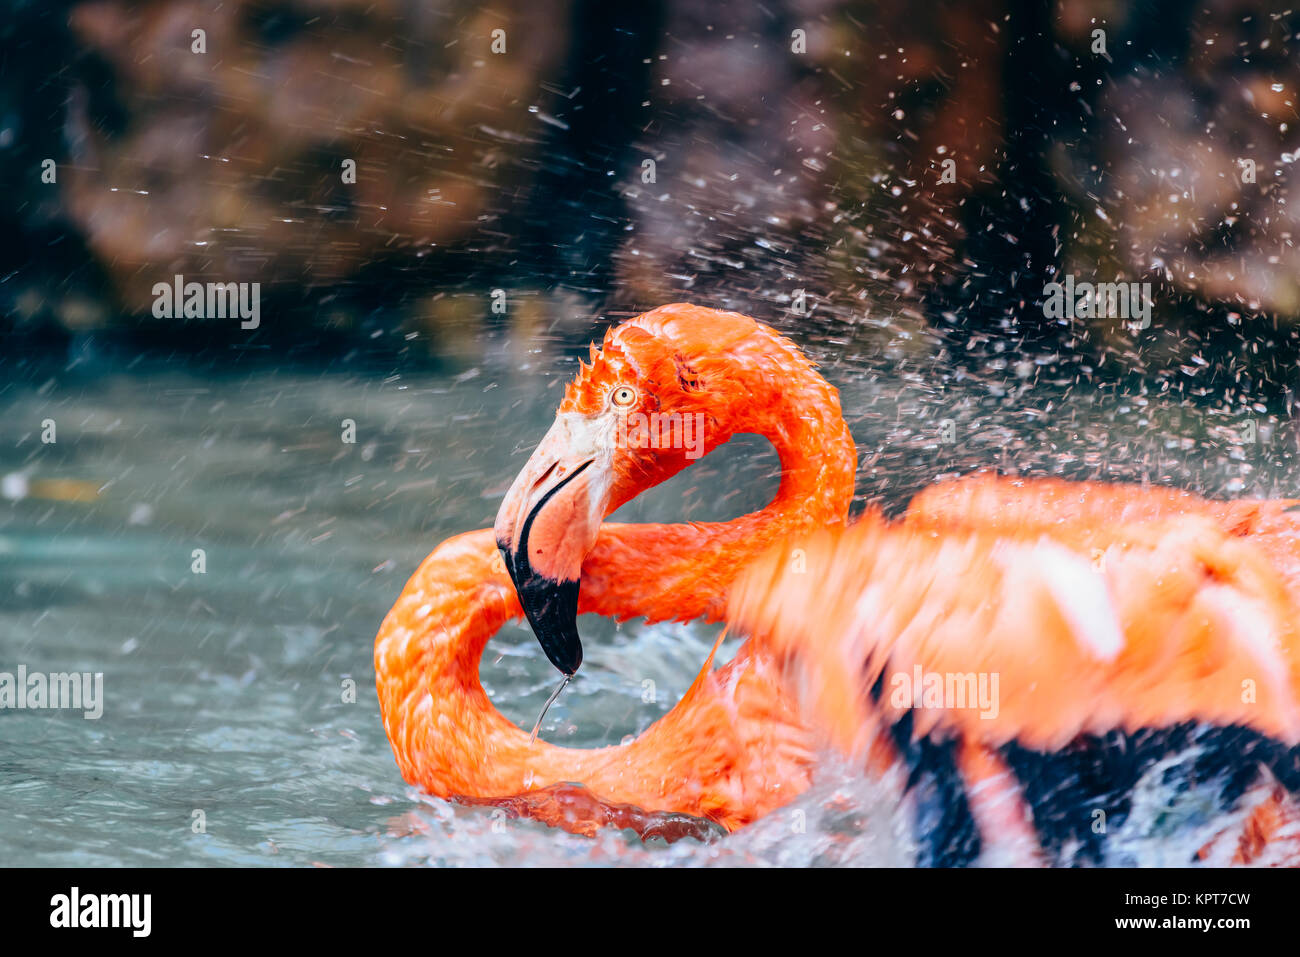 Pink Flamingo Bird Portrait In Wilderness - Stock Image